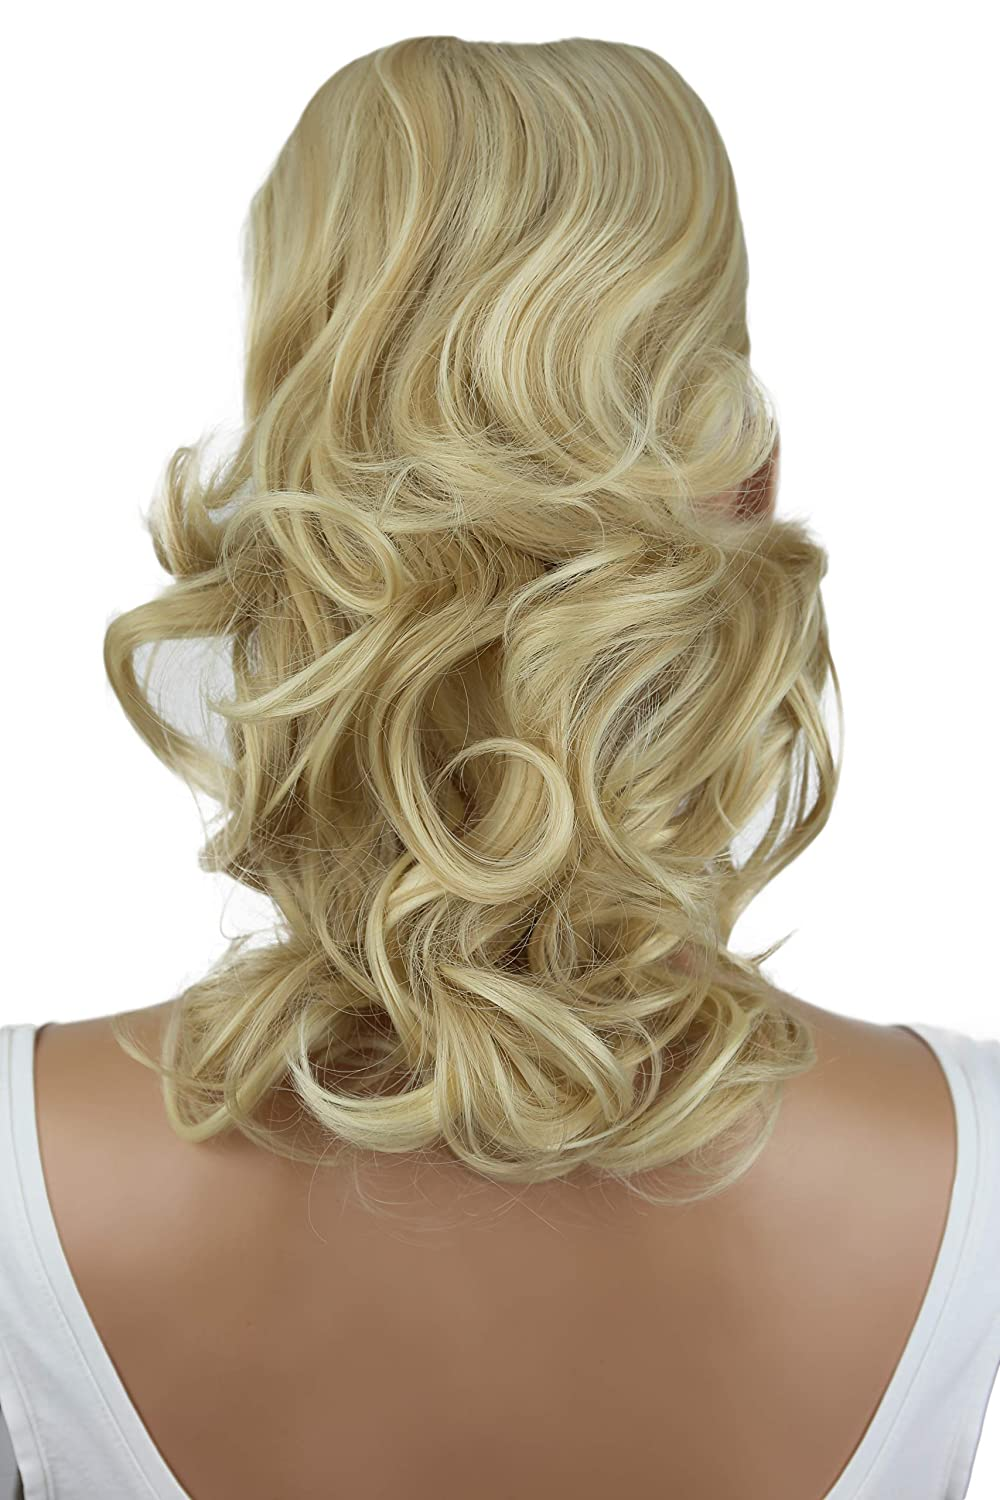 PRTTYSHOP Hair Piece Pony Tail Extension Draw String Voluminous Curly Heat-Resisting 14 light brown mix # 6T27 PH212 PRETTYSHOP